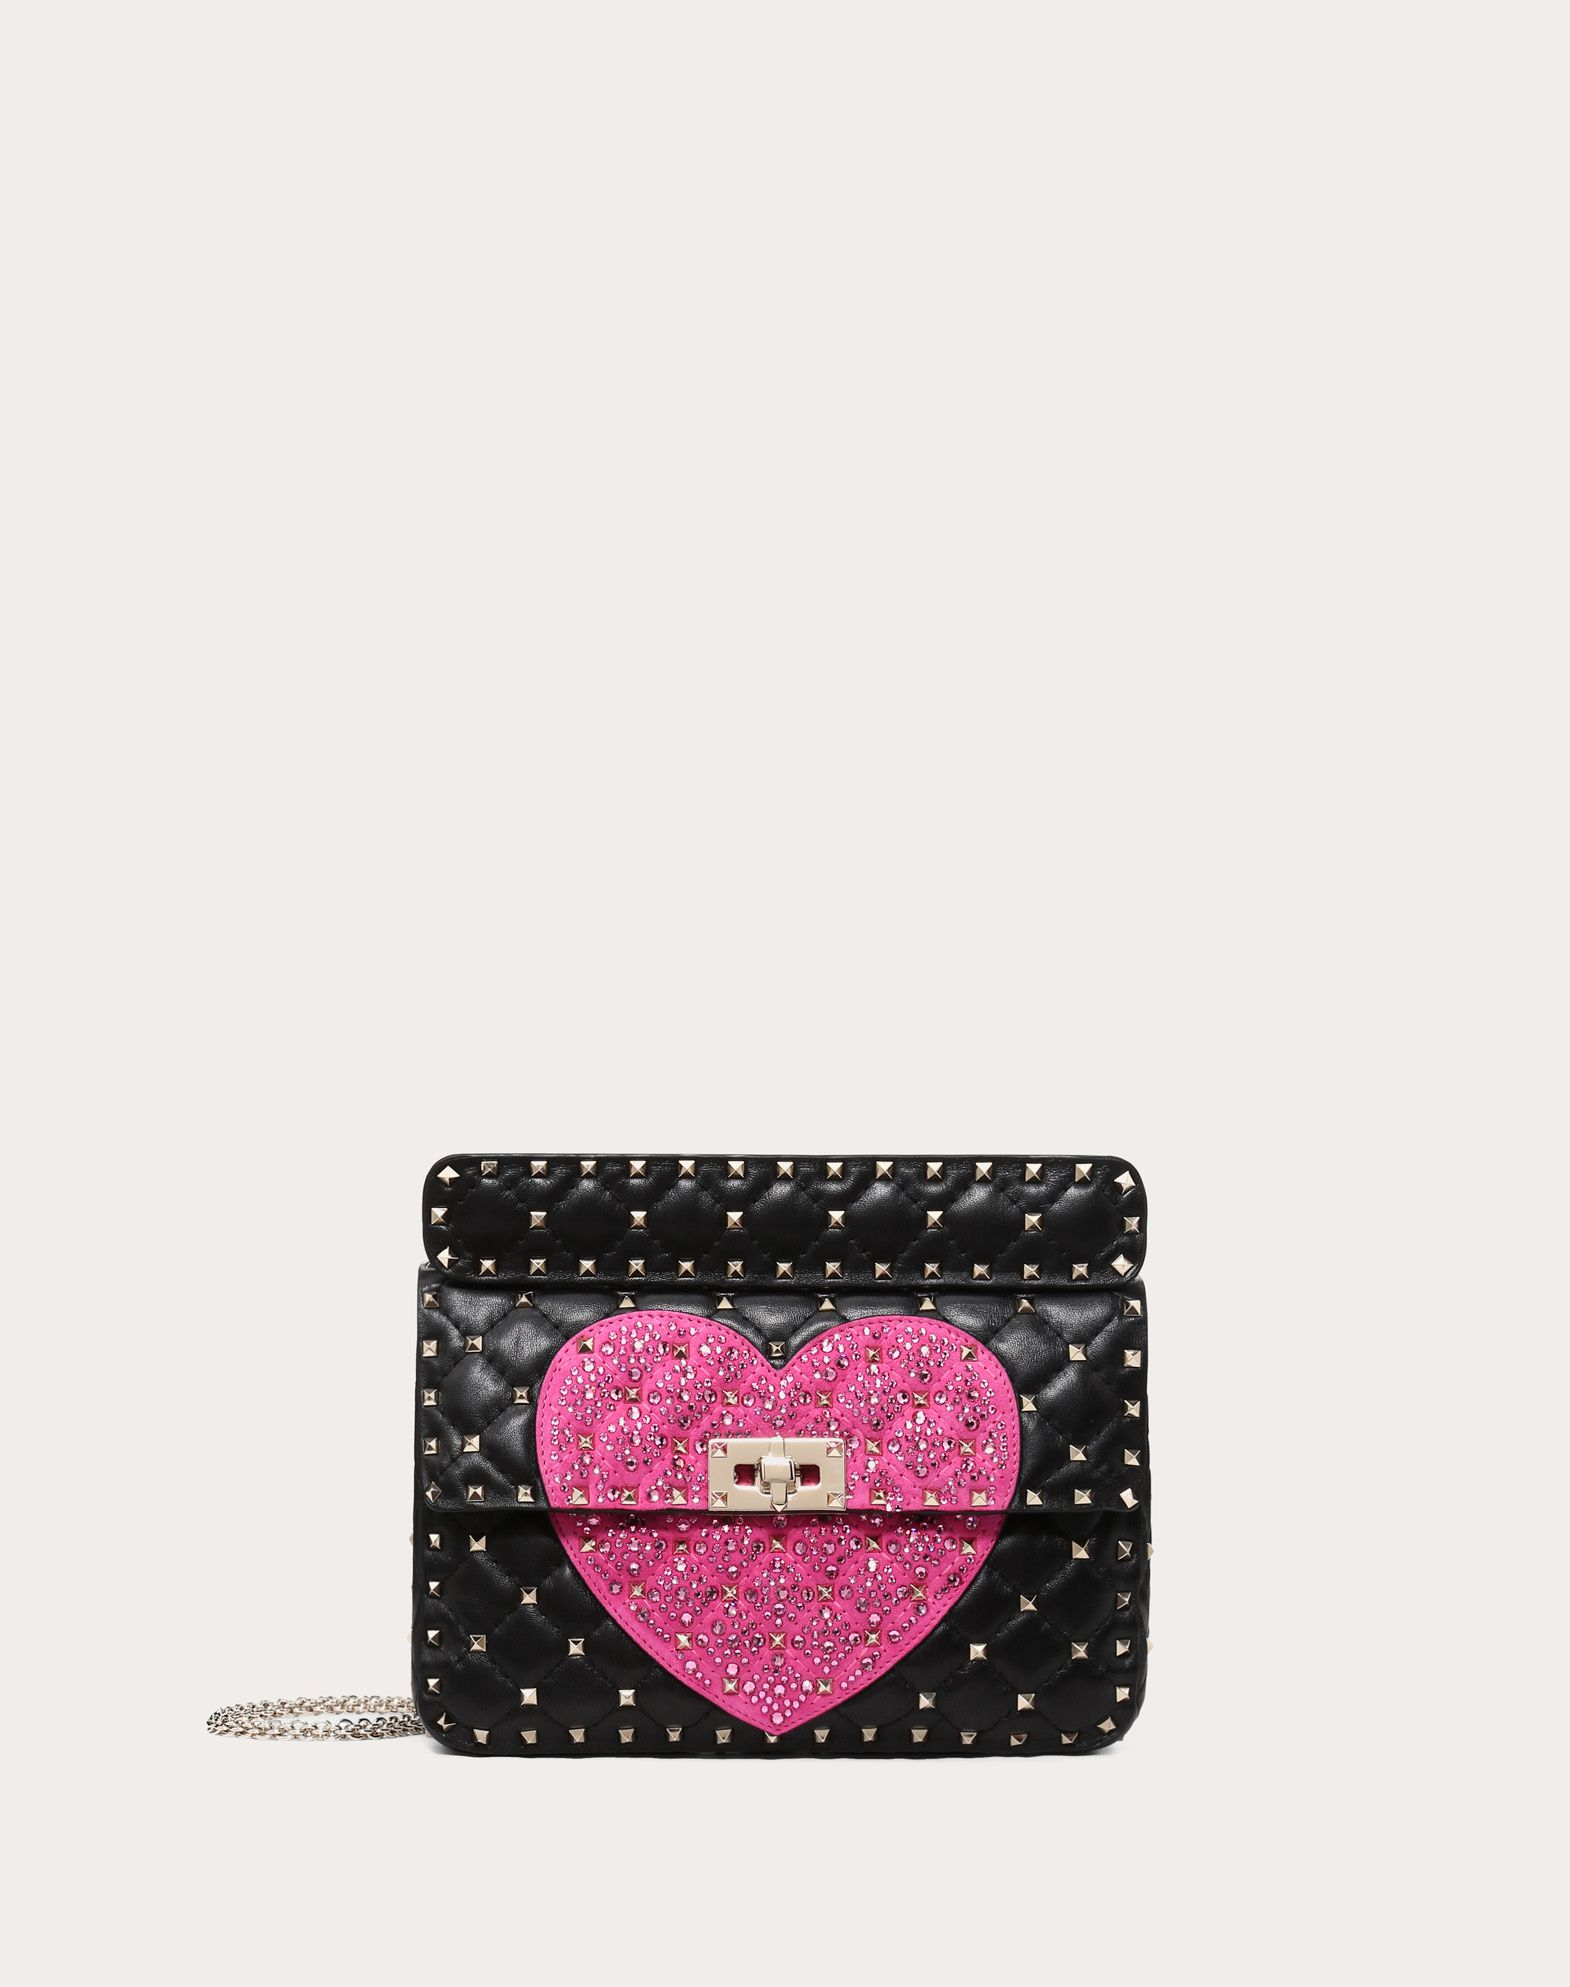 Bolso mediano Rockstud Spike.it con Corazón